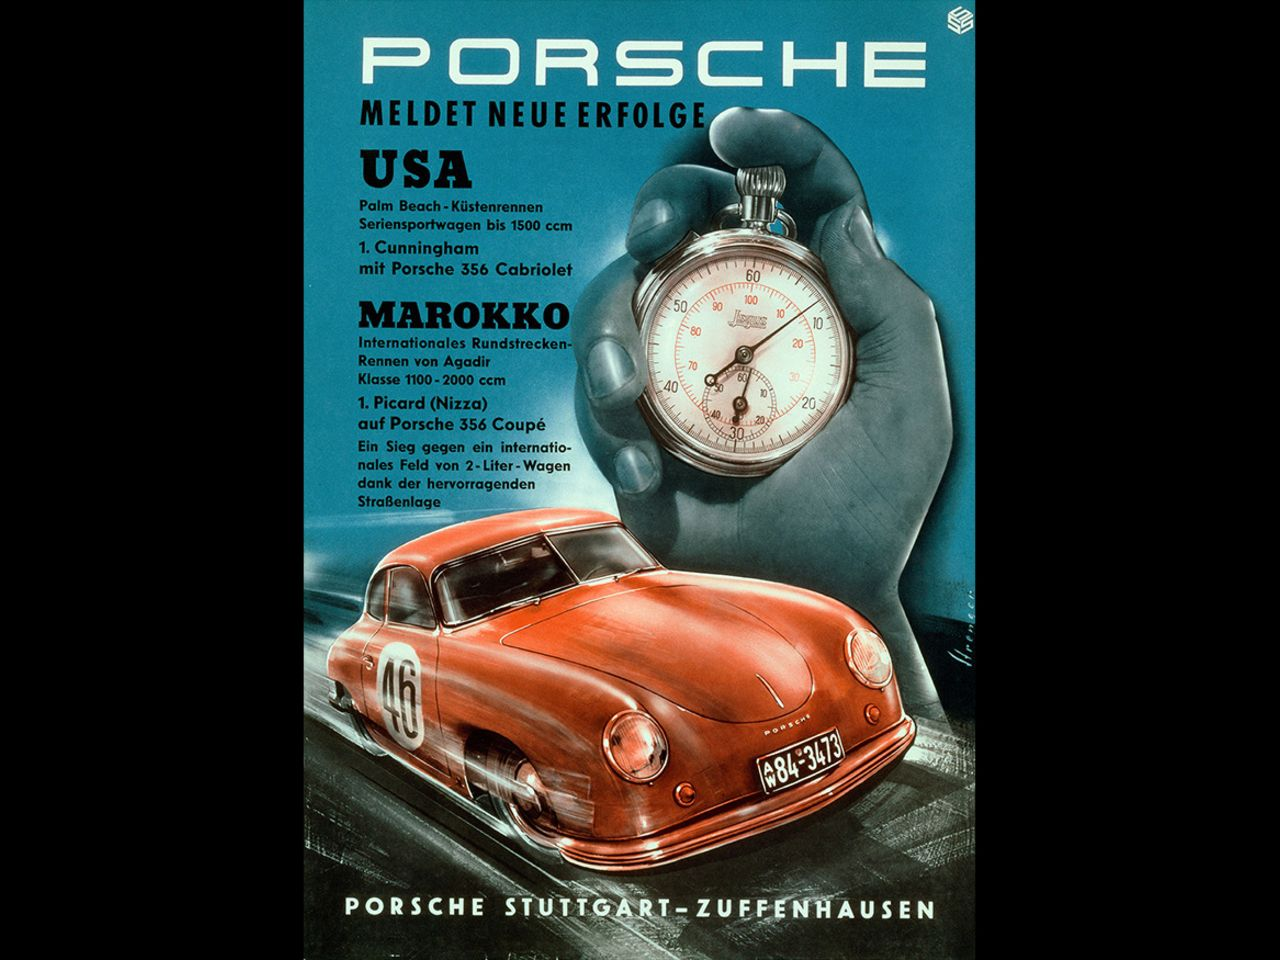 The posters were an important instrument for raising the profile of the young brand. This one was used not only for the class victory in Le Mans in June 1951, but also to announce wins in the USA and Morocco.